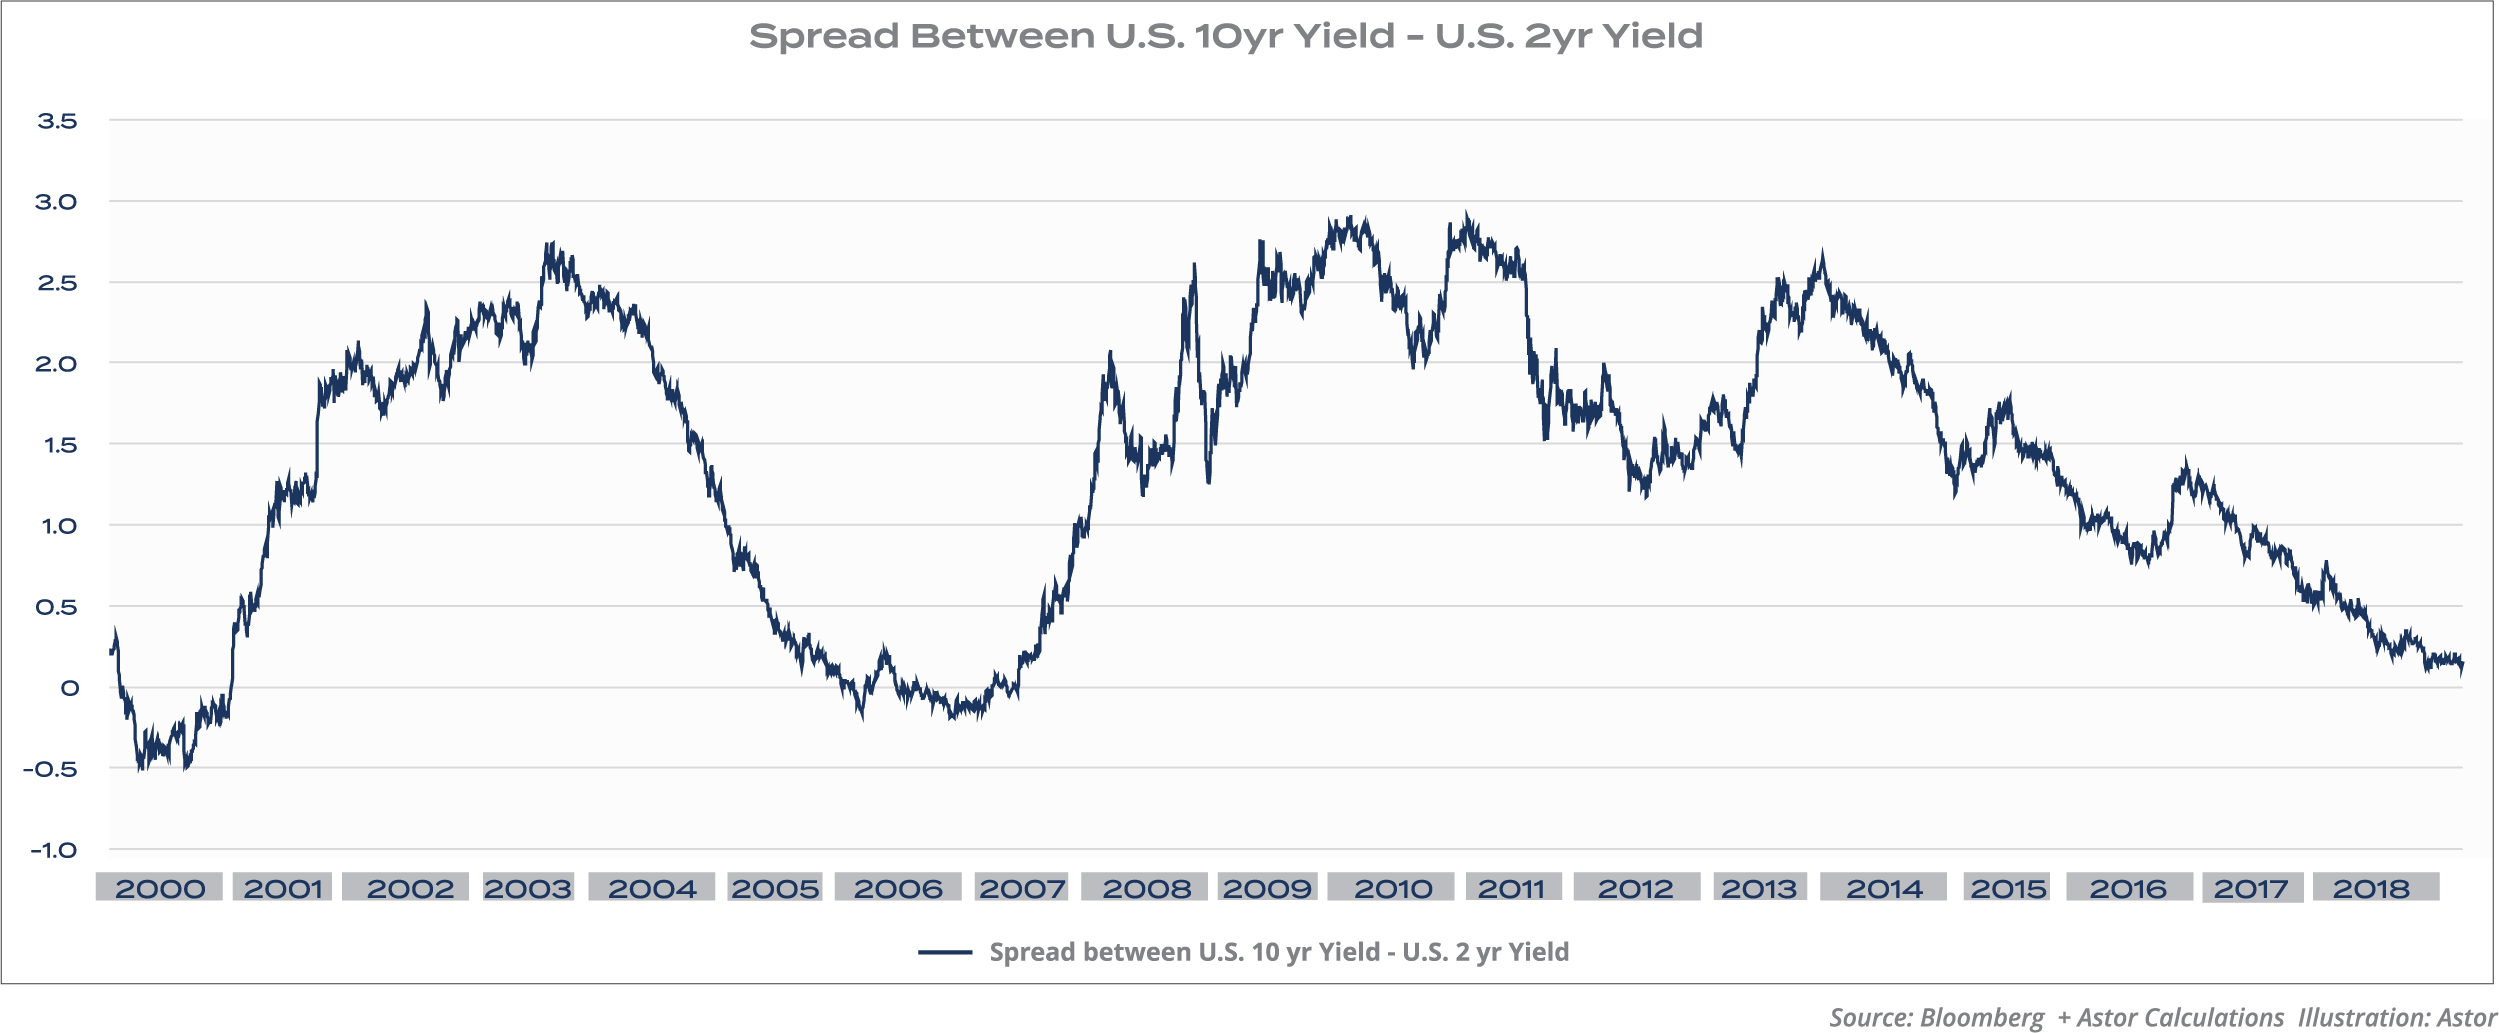 Spread Between U.S. 10yr Yield - U.S. 2yr Yield